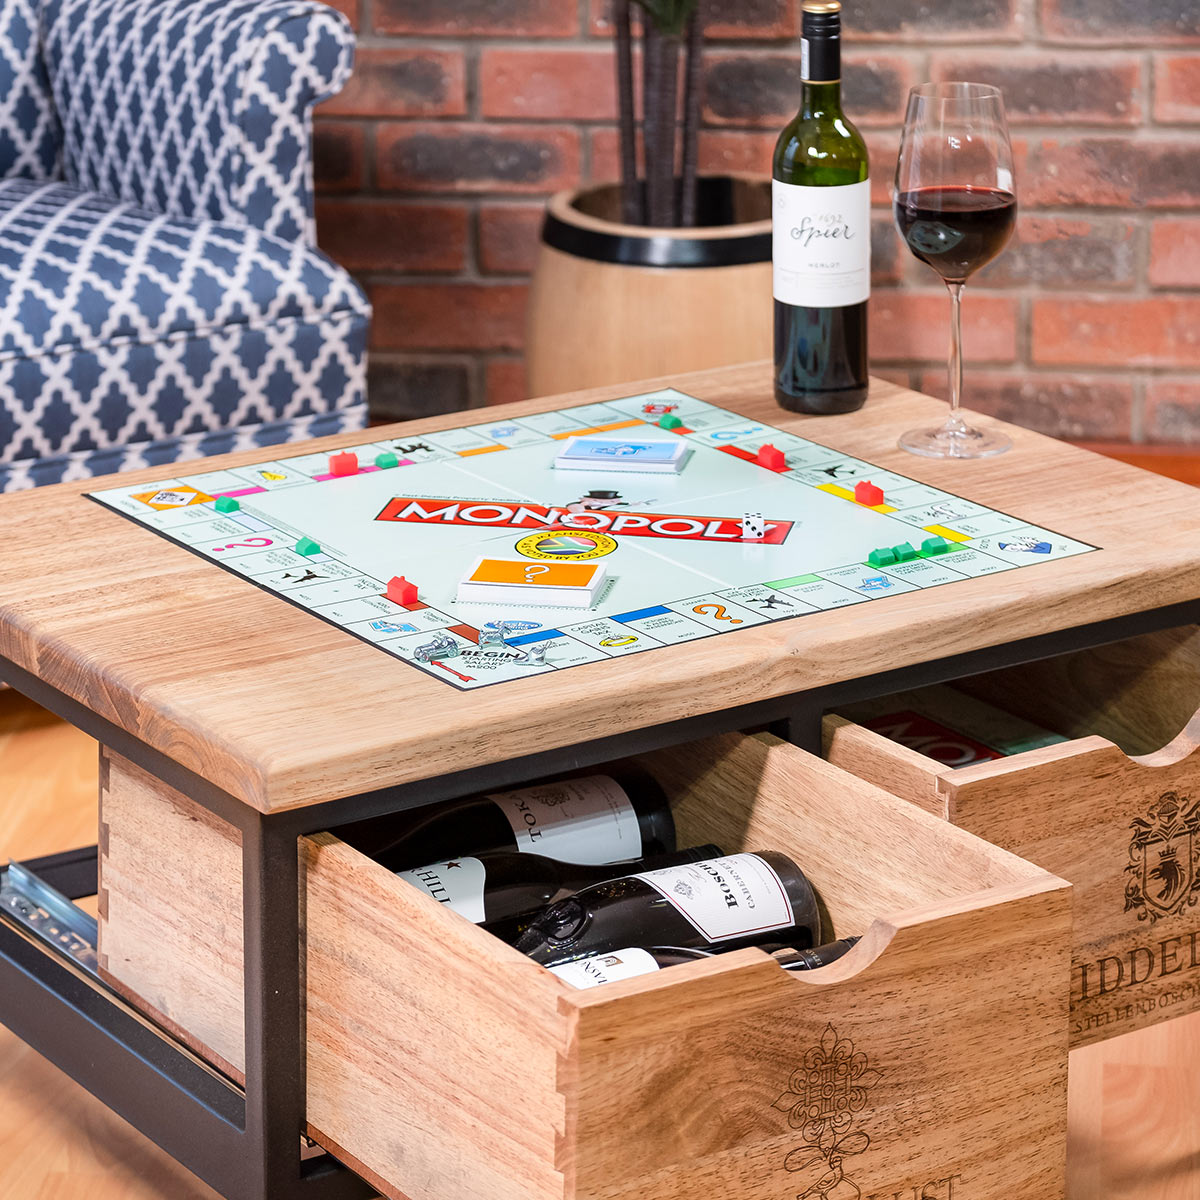 2 Drawer Coffee Table With Monopoly Game